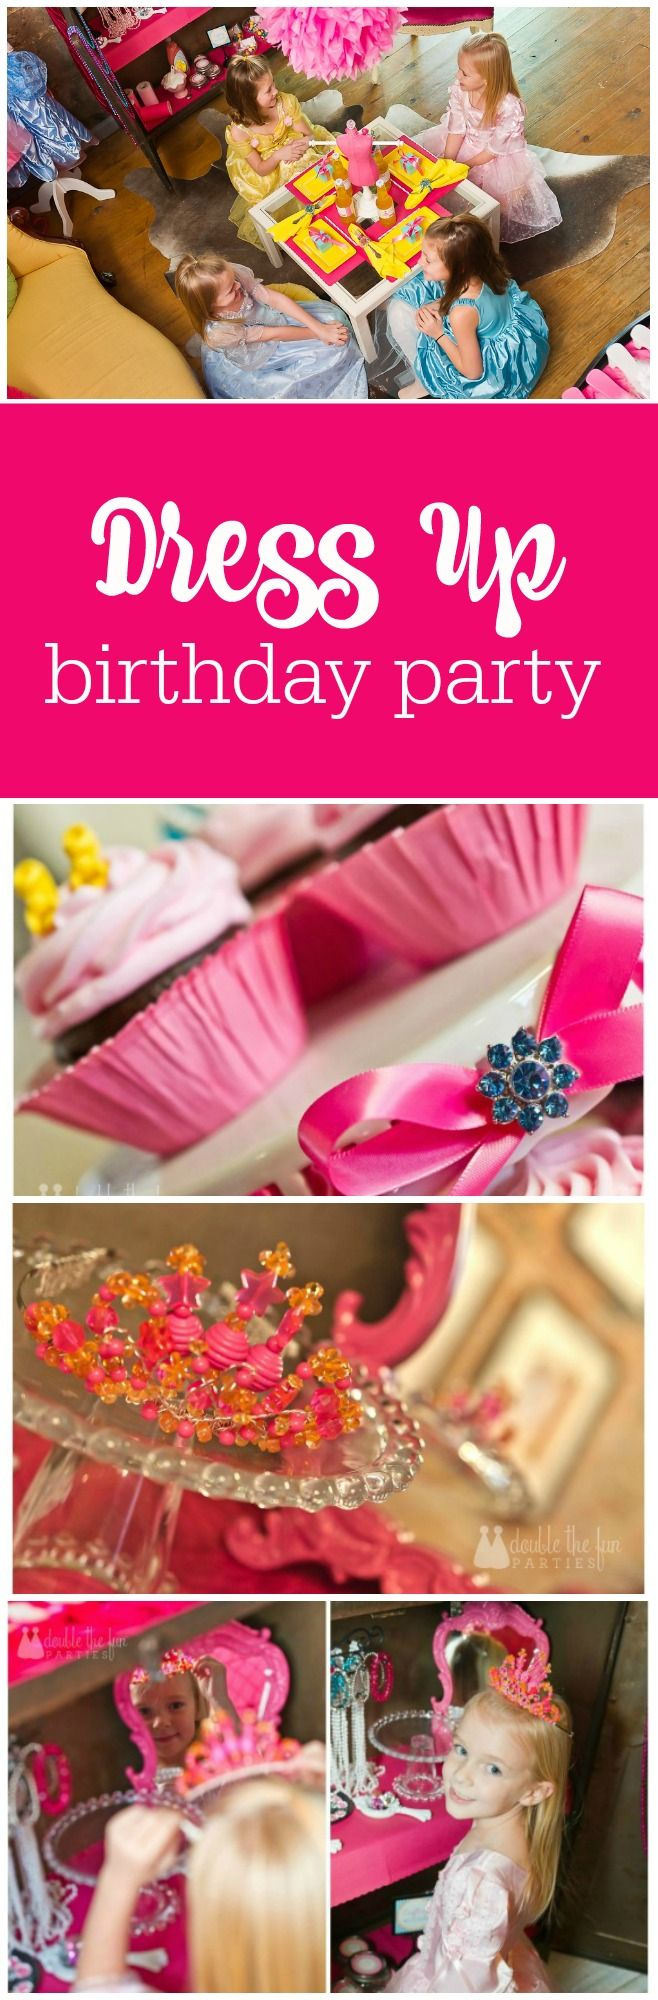 Dress up birthday party by The Party Teacher |http://thepartyteacher.com/2013/01/14/our-parties-dress-up-birthday-party/